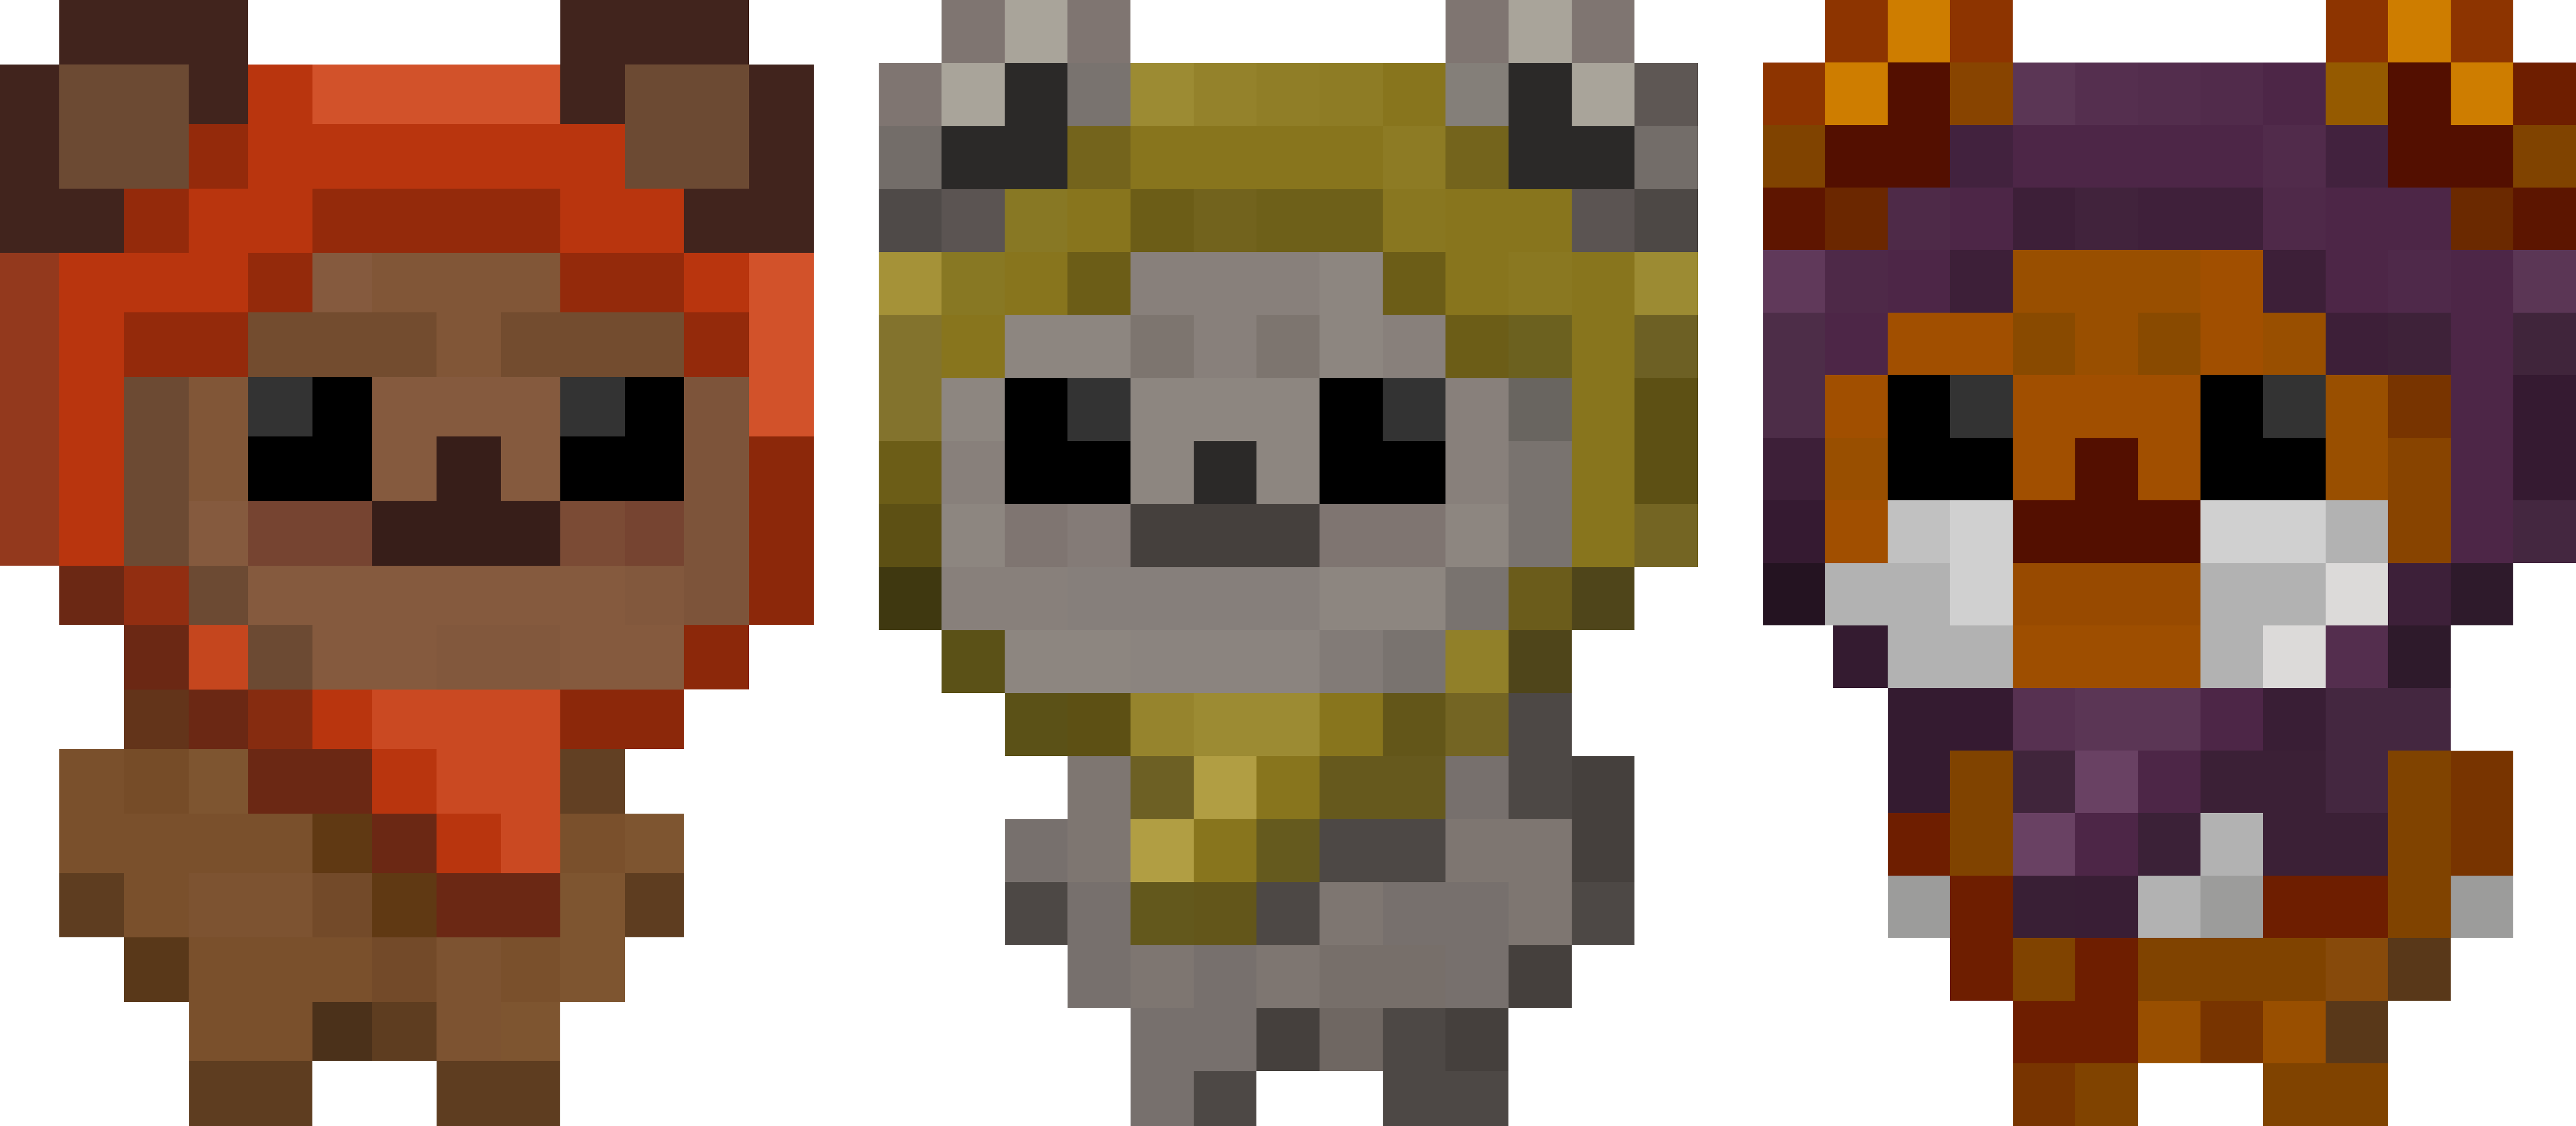 8 bit spaceship png. Ewoks in tiny